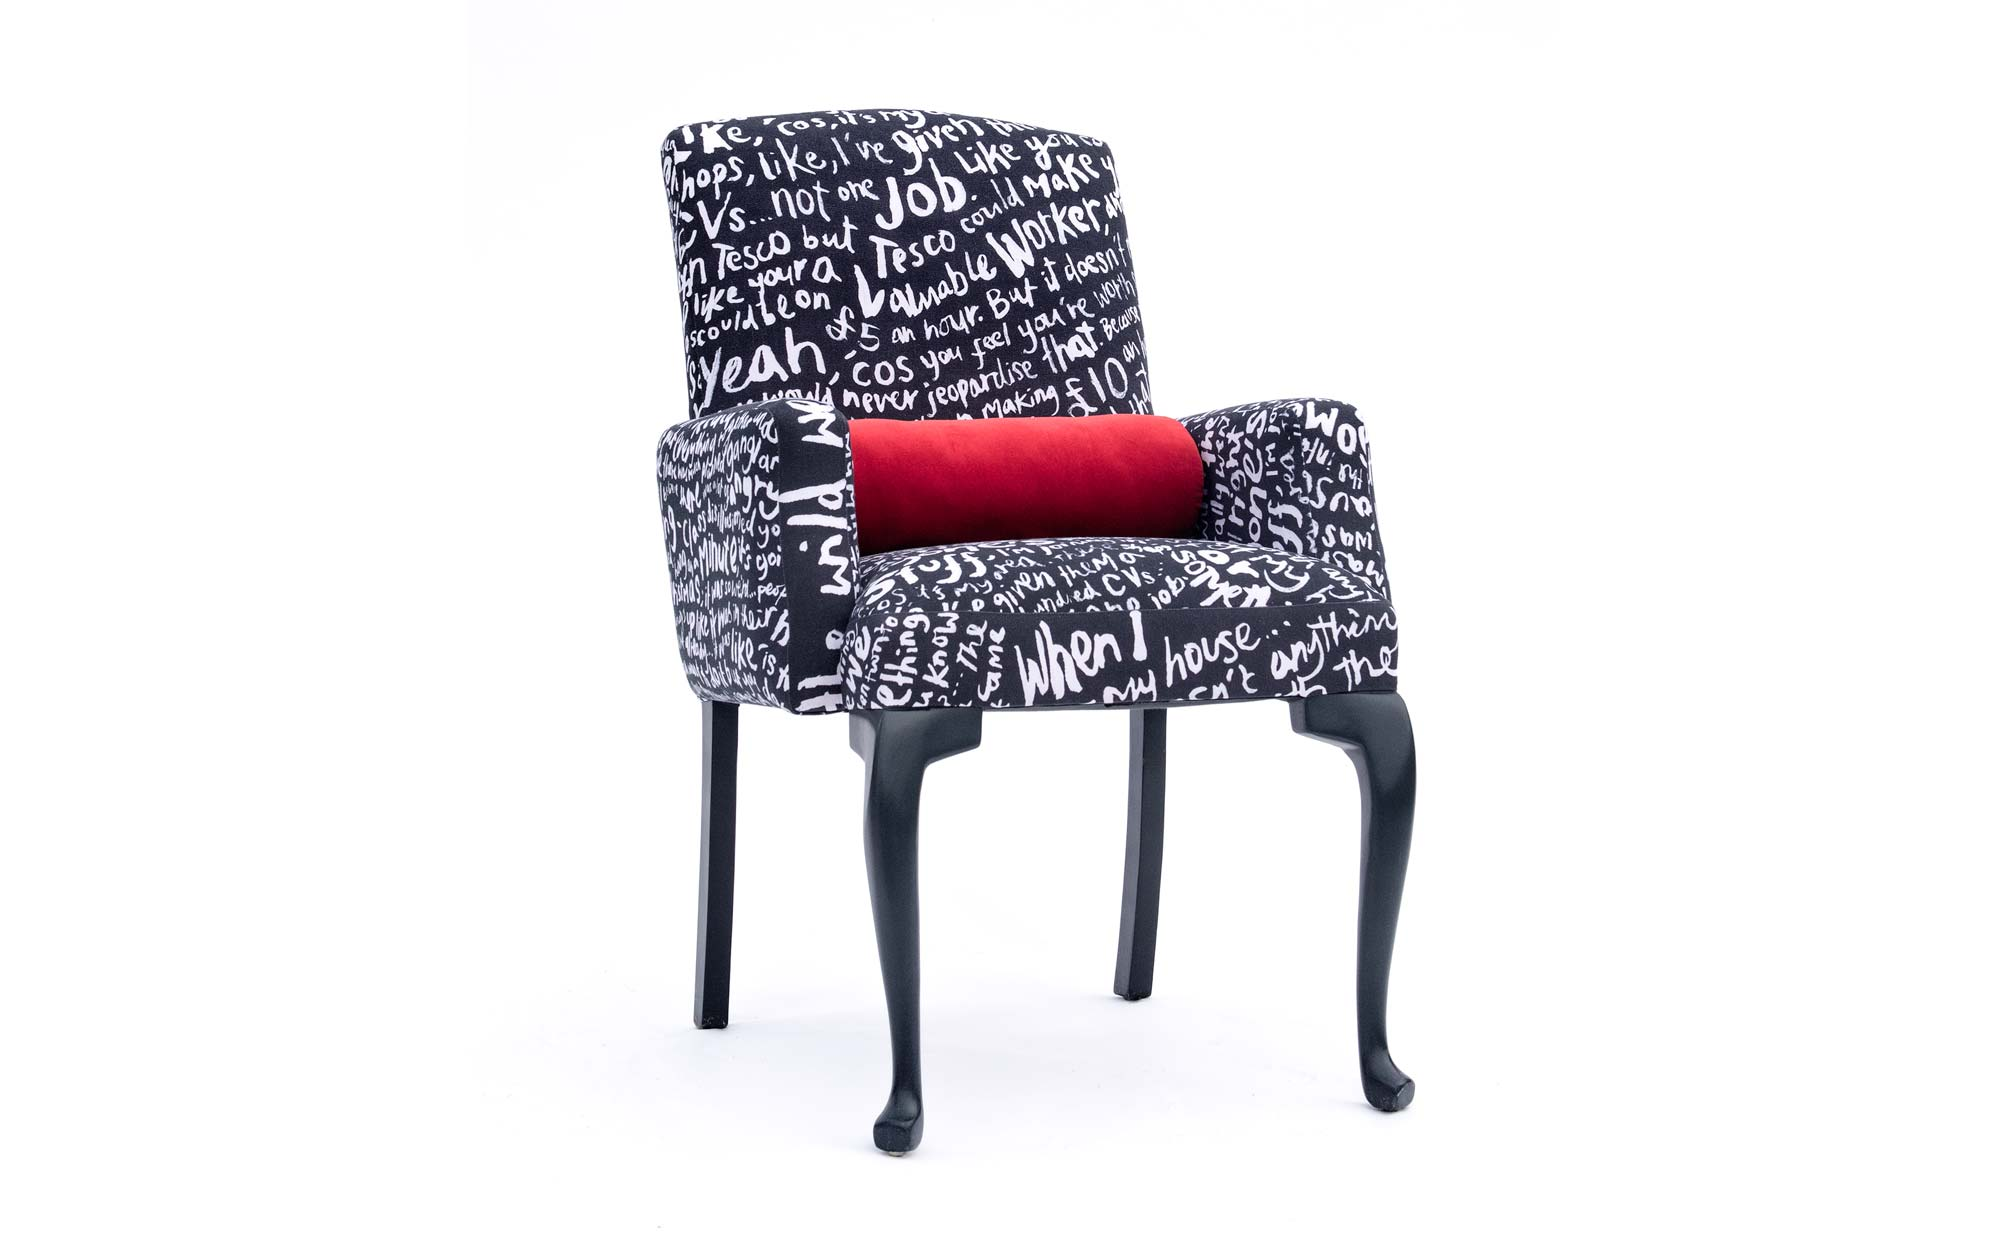 lorraine osborne. reading the riot desk chair